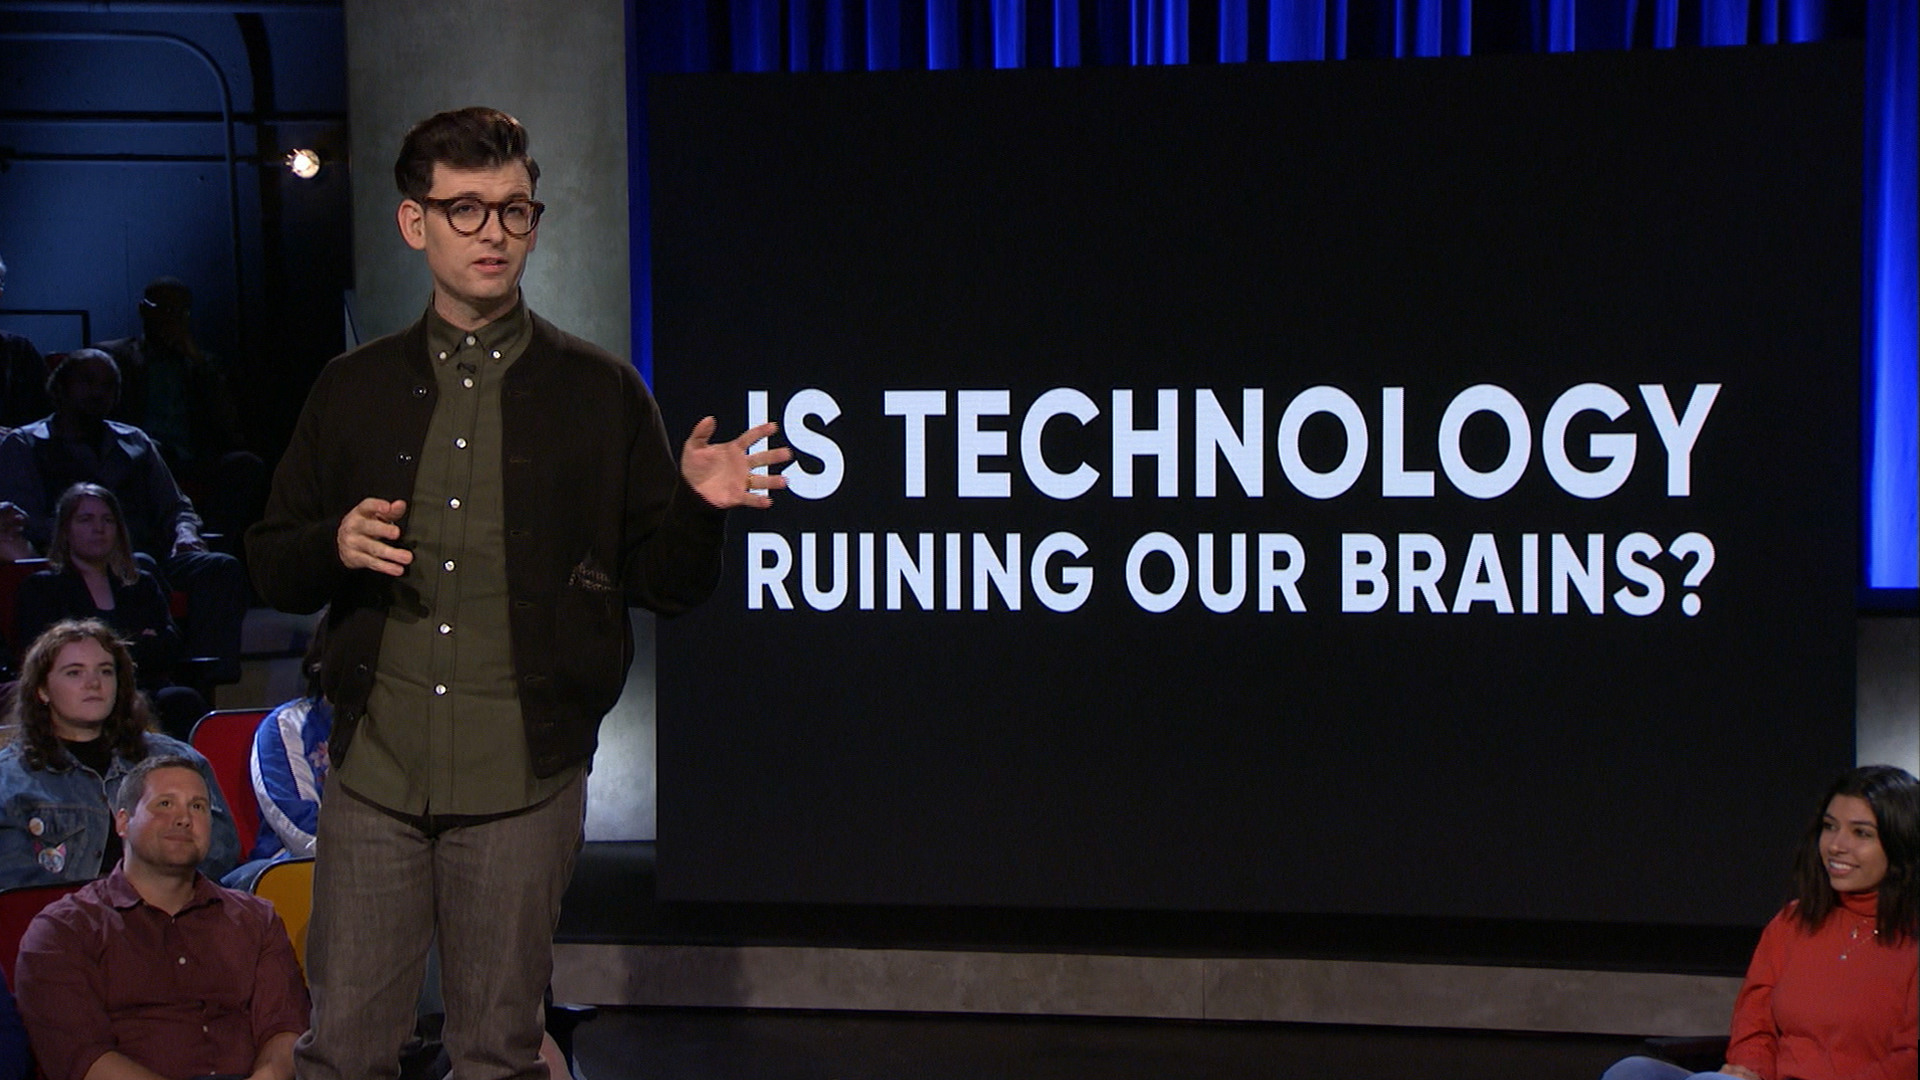 Is Technology Ruining Our Brains?